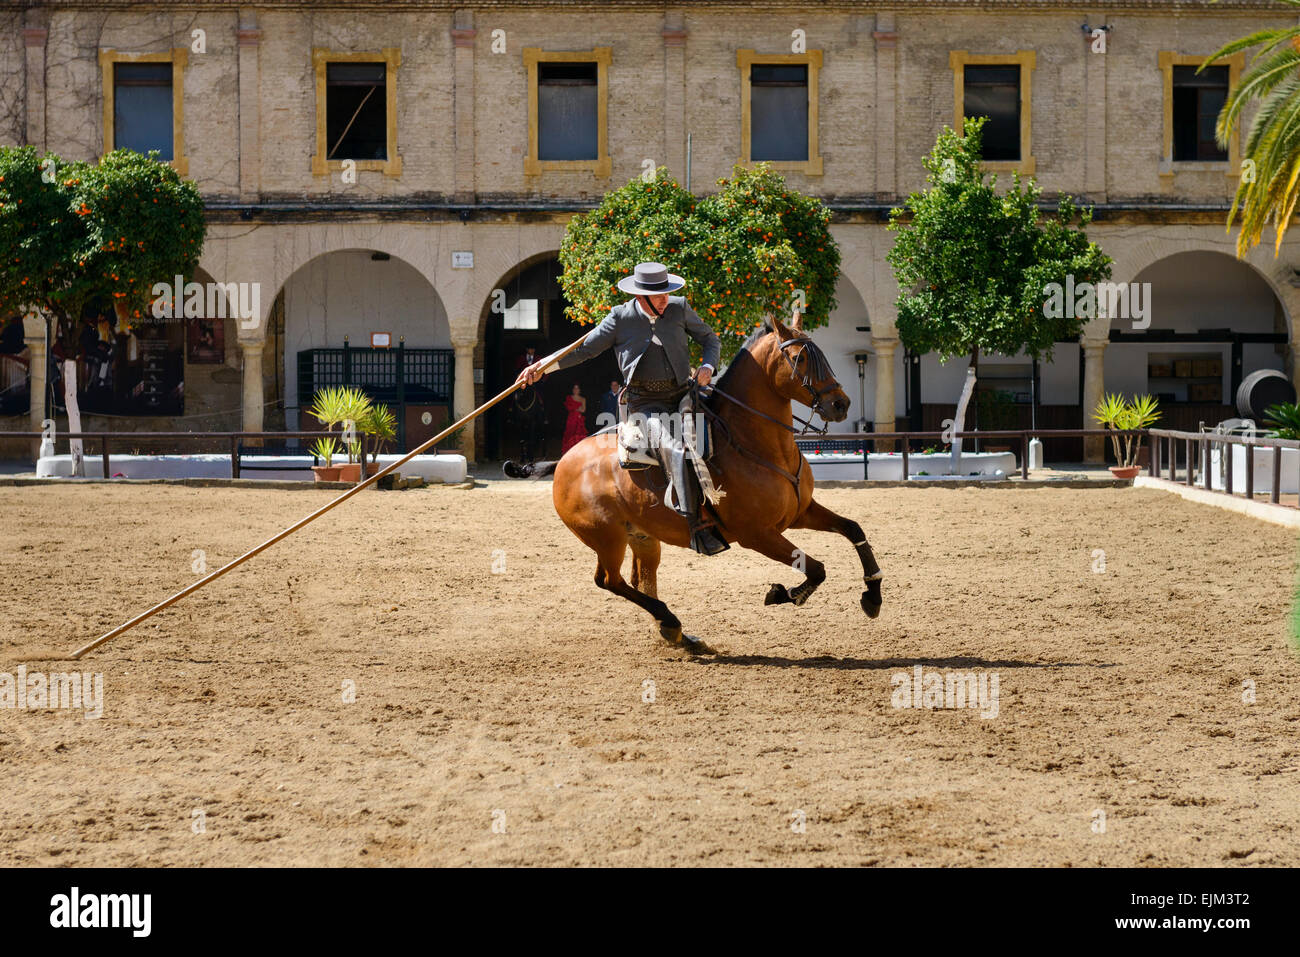 The equestrian show in the Royal stables of Cordoba - Stock Image